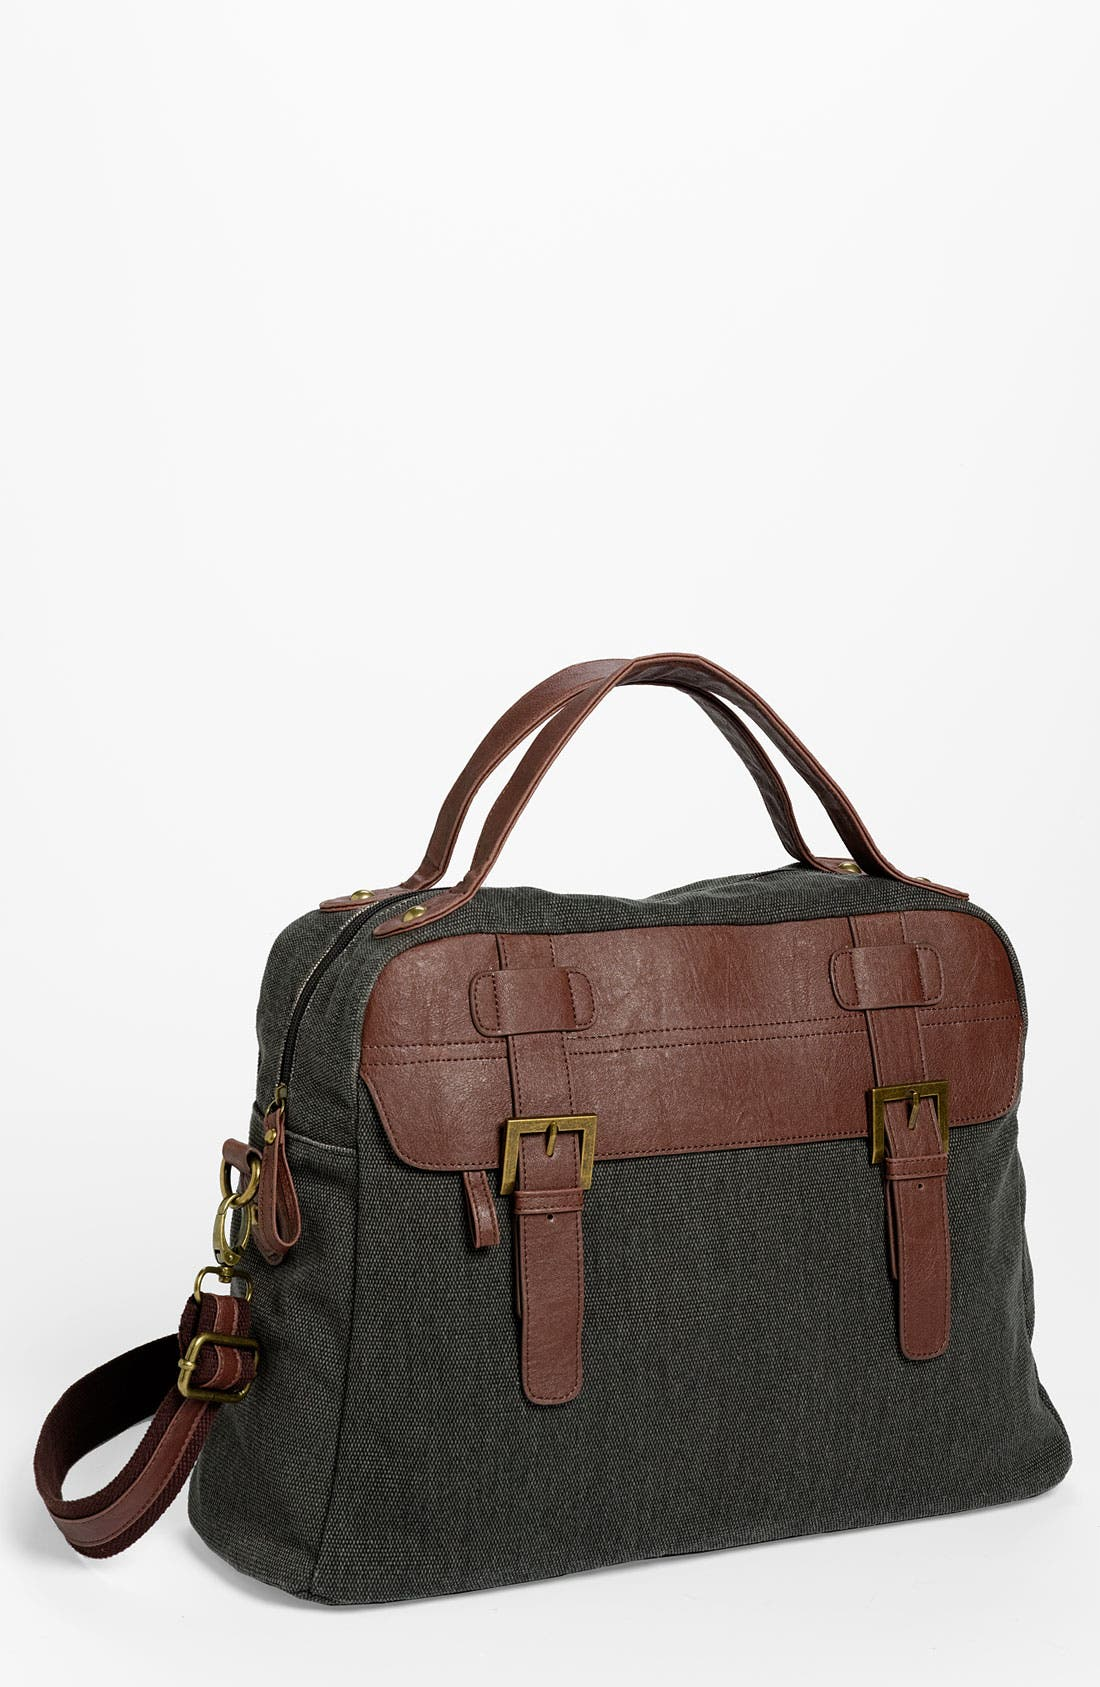 Alternate Image 1 Selected - BP. Canvas & Faux Leather Tote